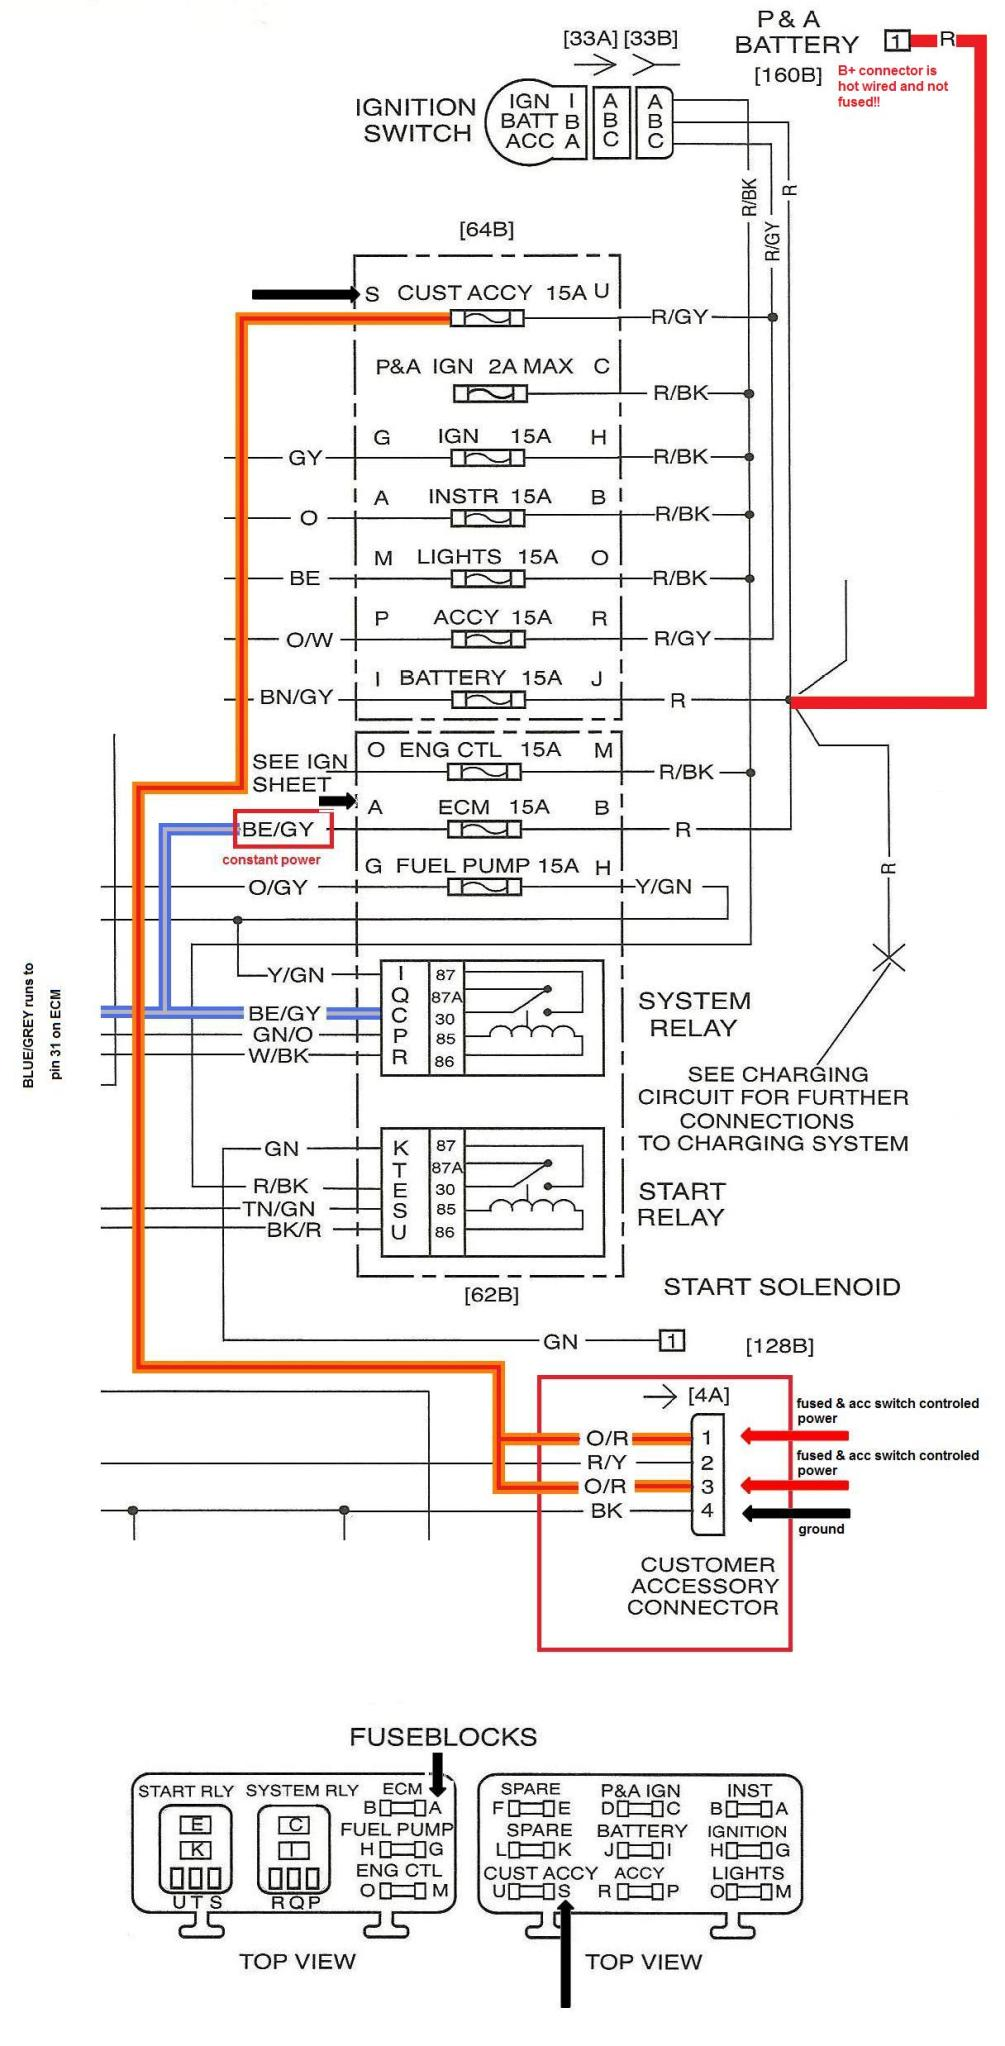 98 Vw Beetle Wiring Lights Diagram likewise Volkswagen Gti Wiring Diagram Wiring Diagrams furthermore Vw Aircraft Engine Radial further Viewtopic together with Las Mujeres Mas Hermosas De Londres 2012. on 1974 vw beetle wiring diagram